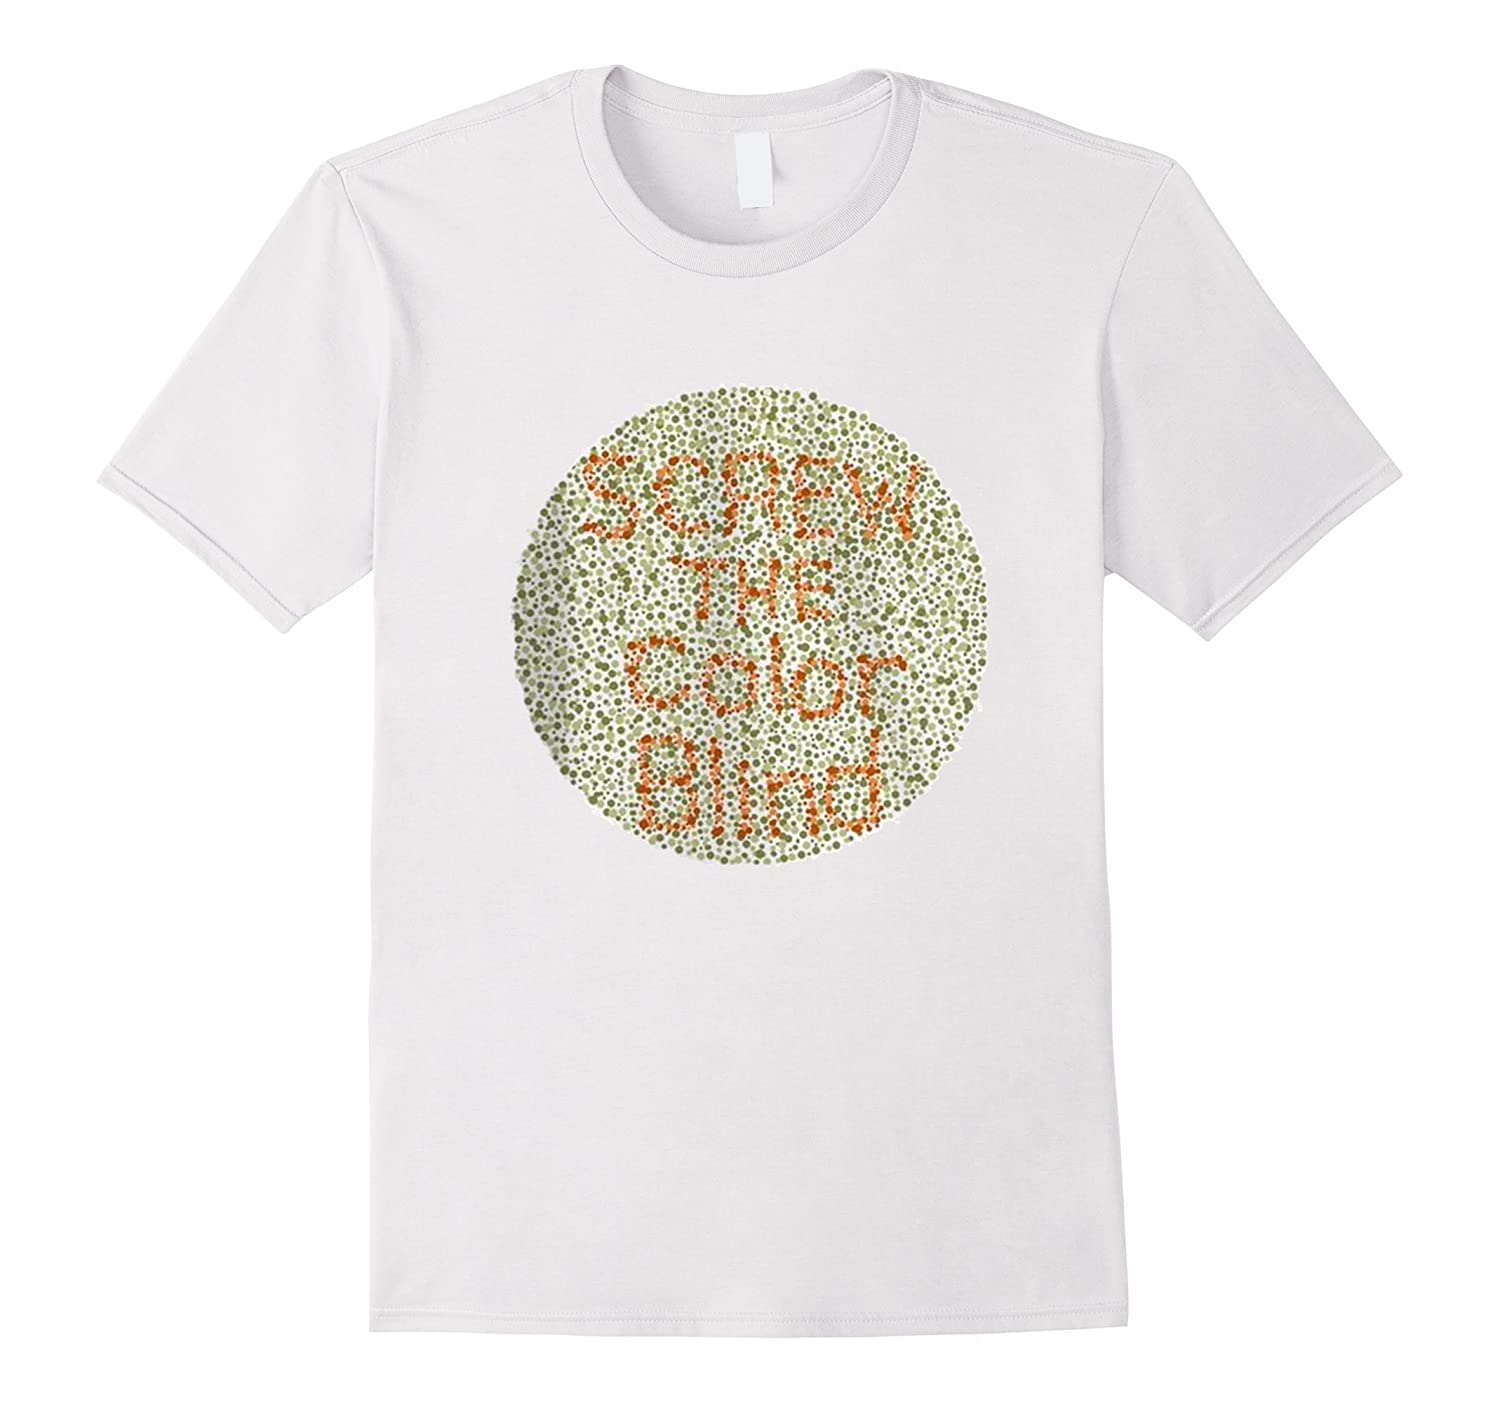 fcc838610 Screw The Color Blind Colorblind Circle Dot T-Shirt-RT – Rateeshirt